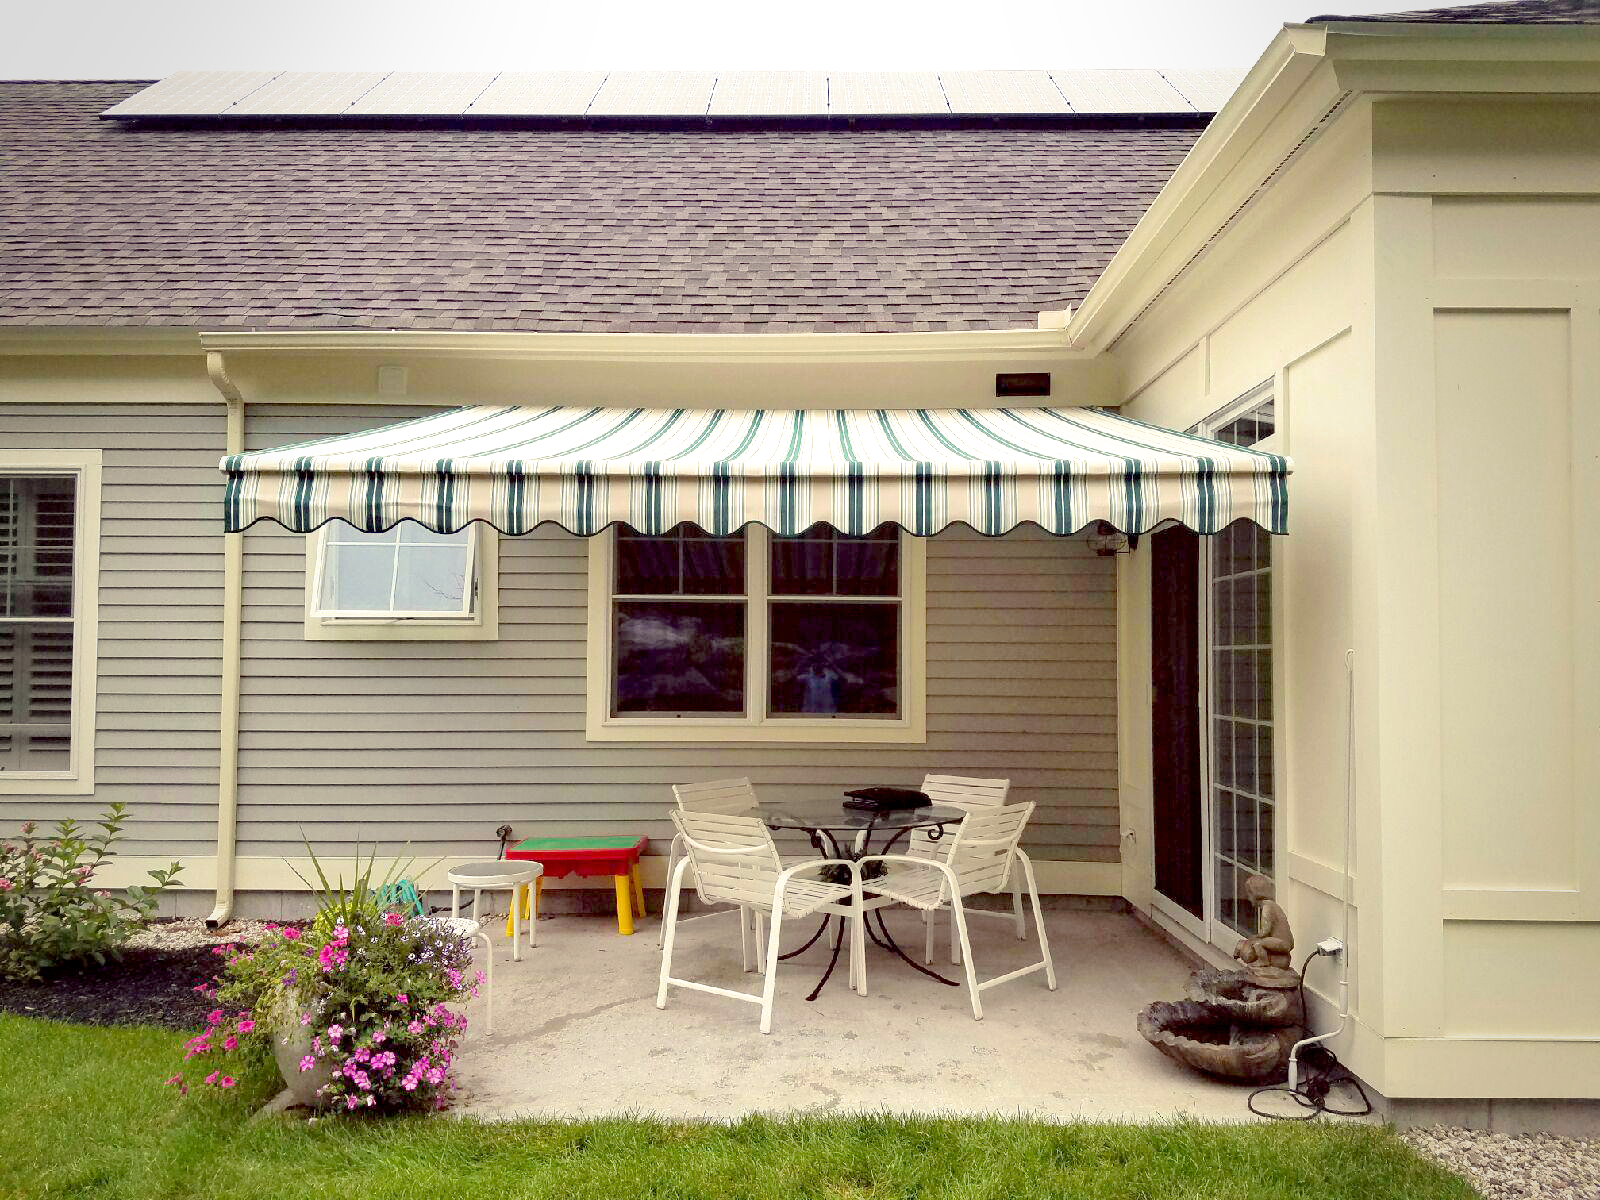 This Nuimage Awnings Pro Series 7700 Retractable Patio